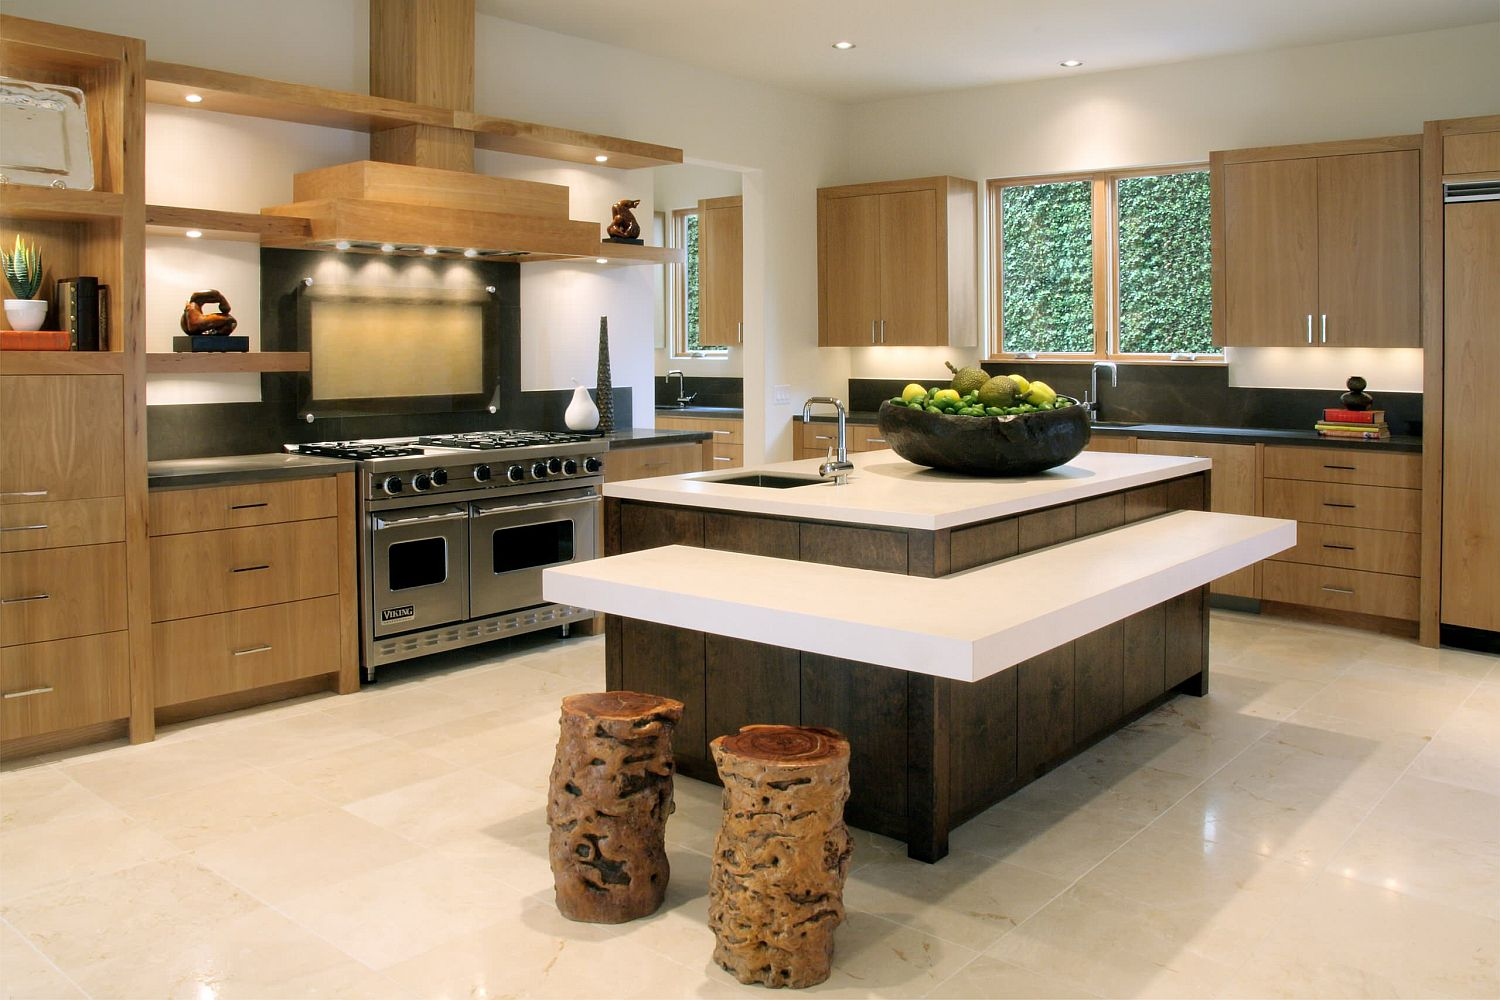 Tree stumps turned into dashing bar stools in the contemporary kitchen